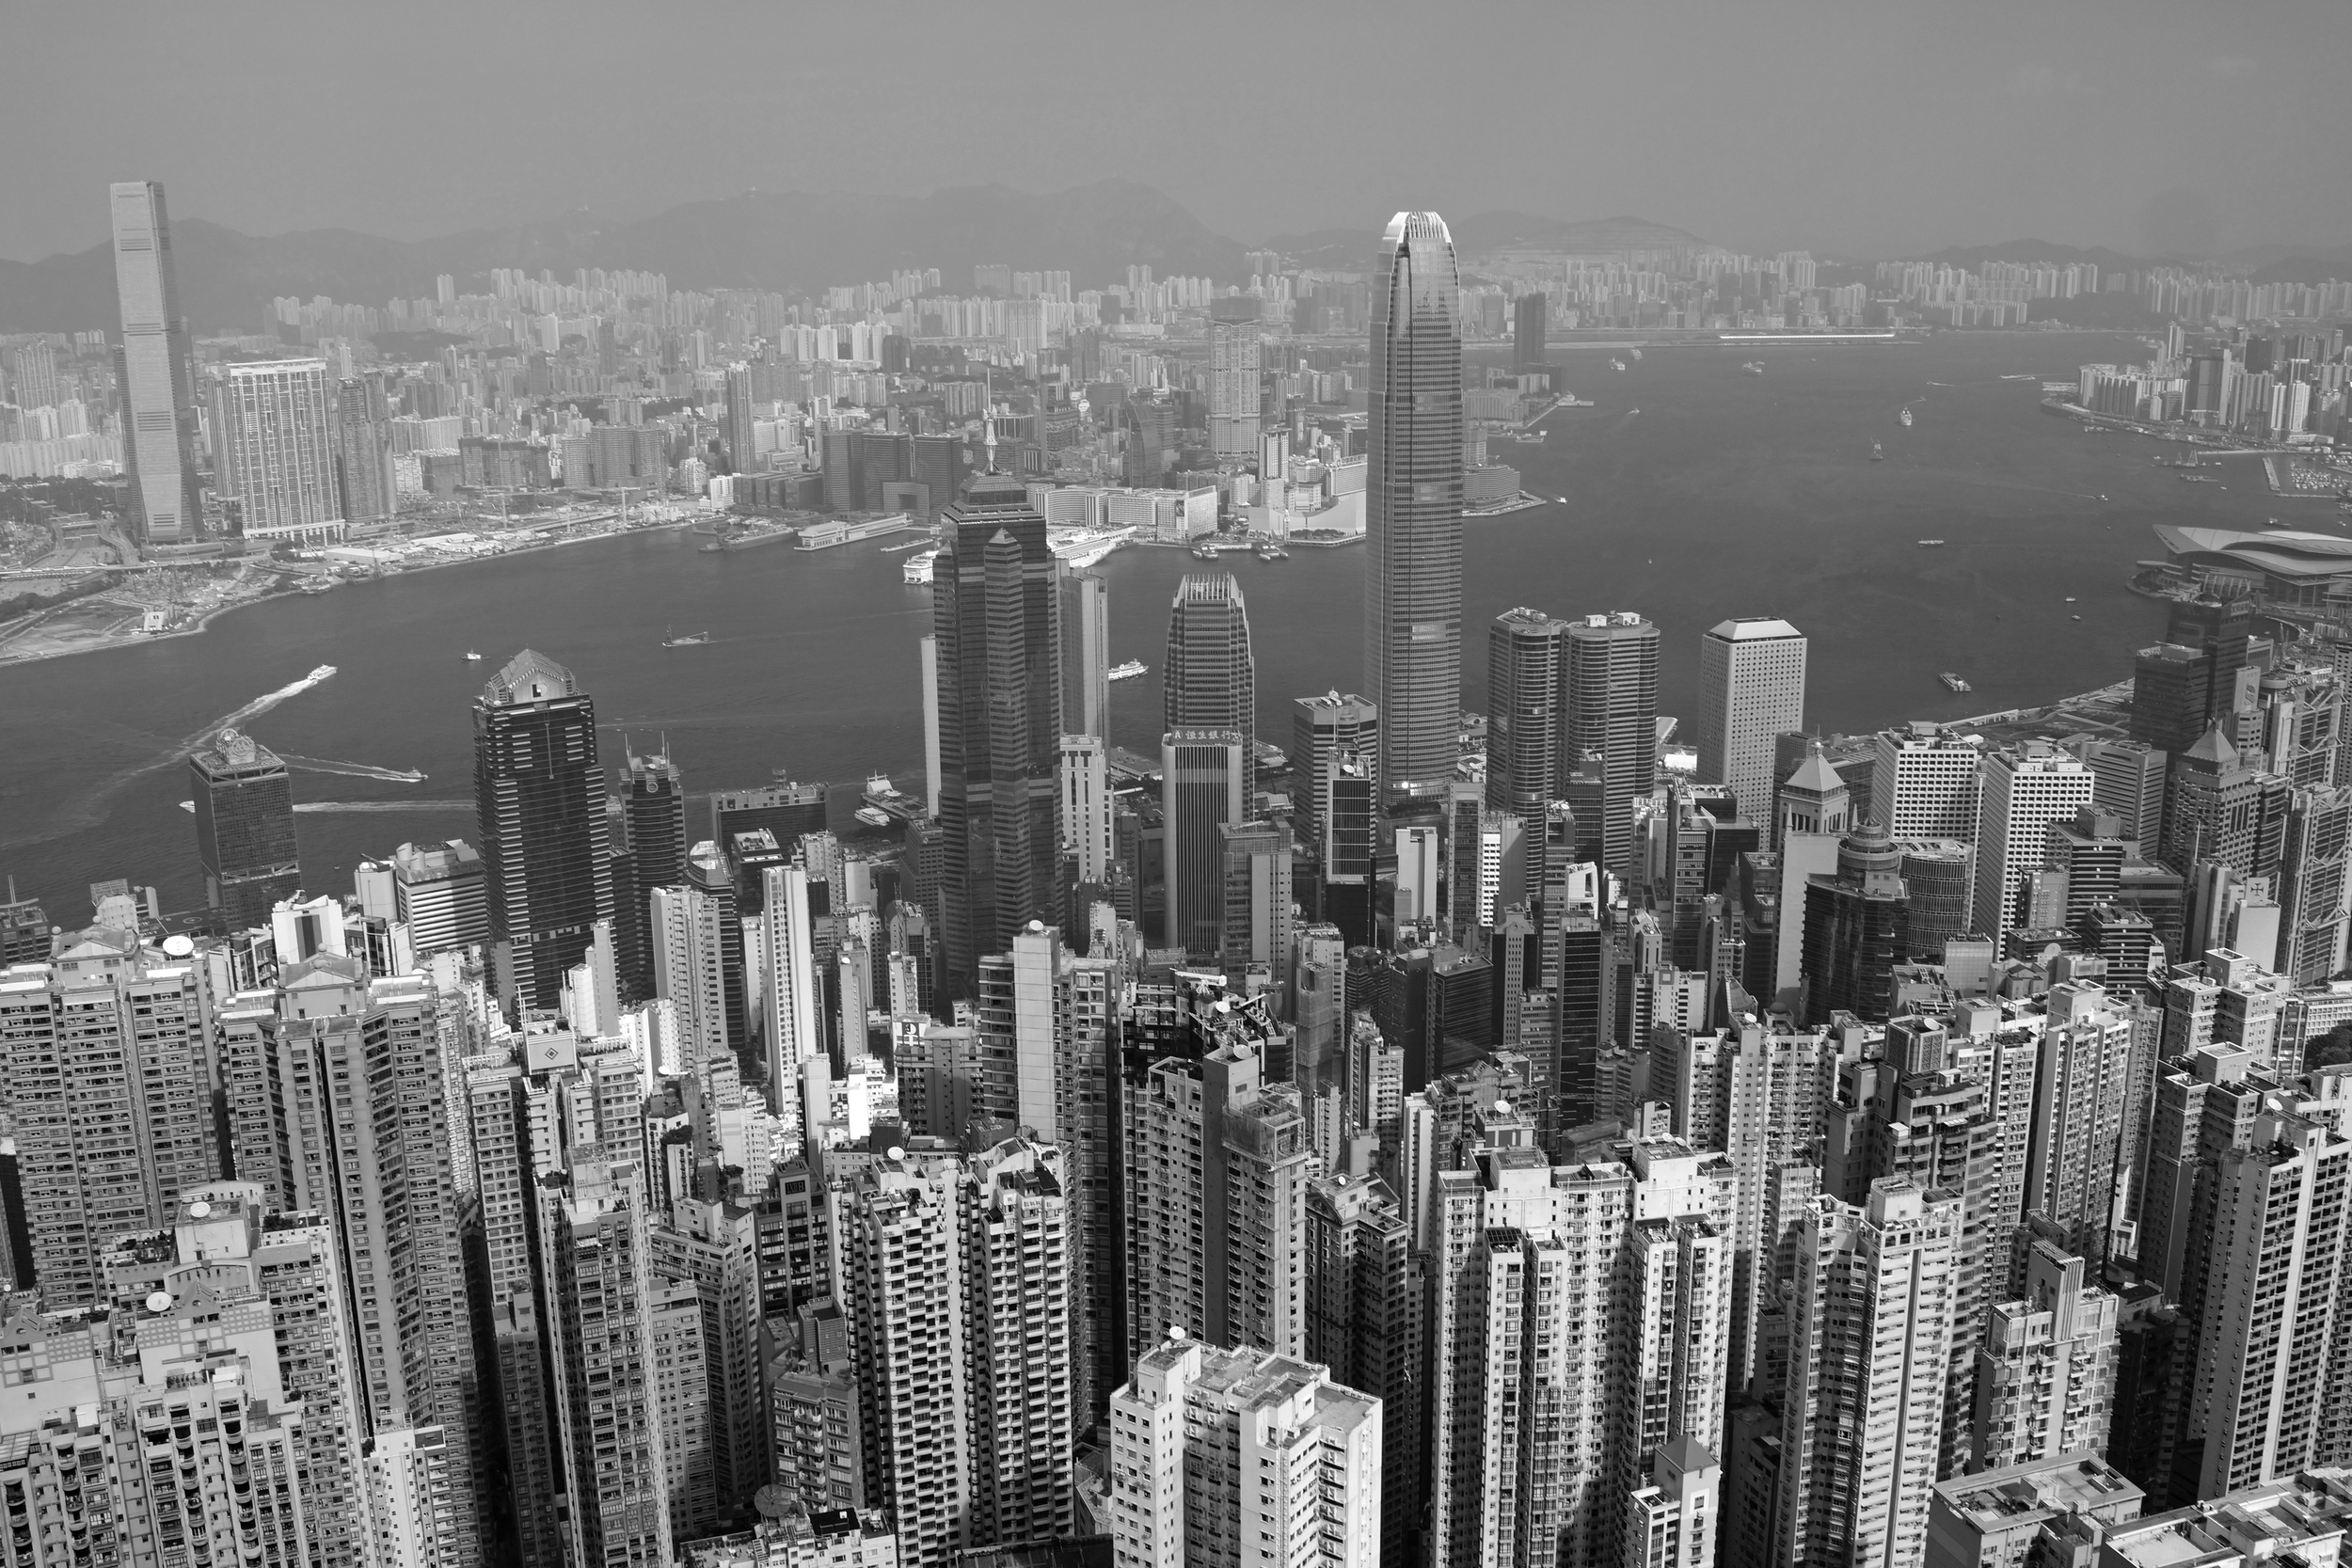 I am not a fan of black and white images.. ut every now and then it is fun to see one, so here is one from my spot at the Peak on a somewhat hazy day.